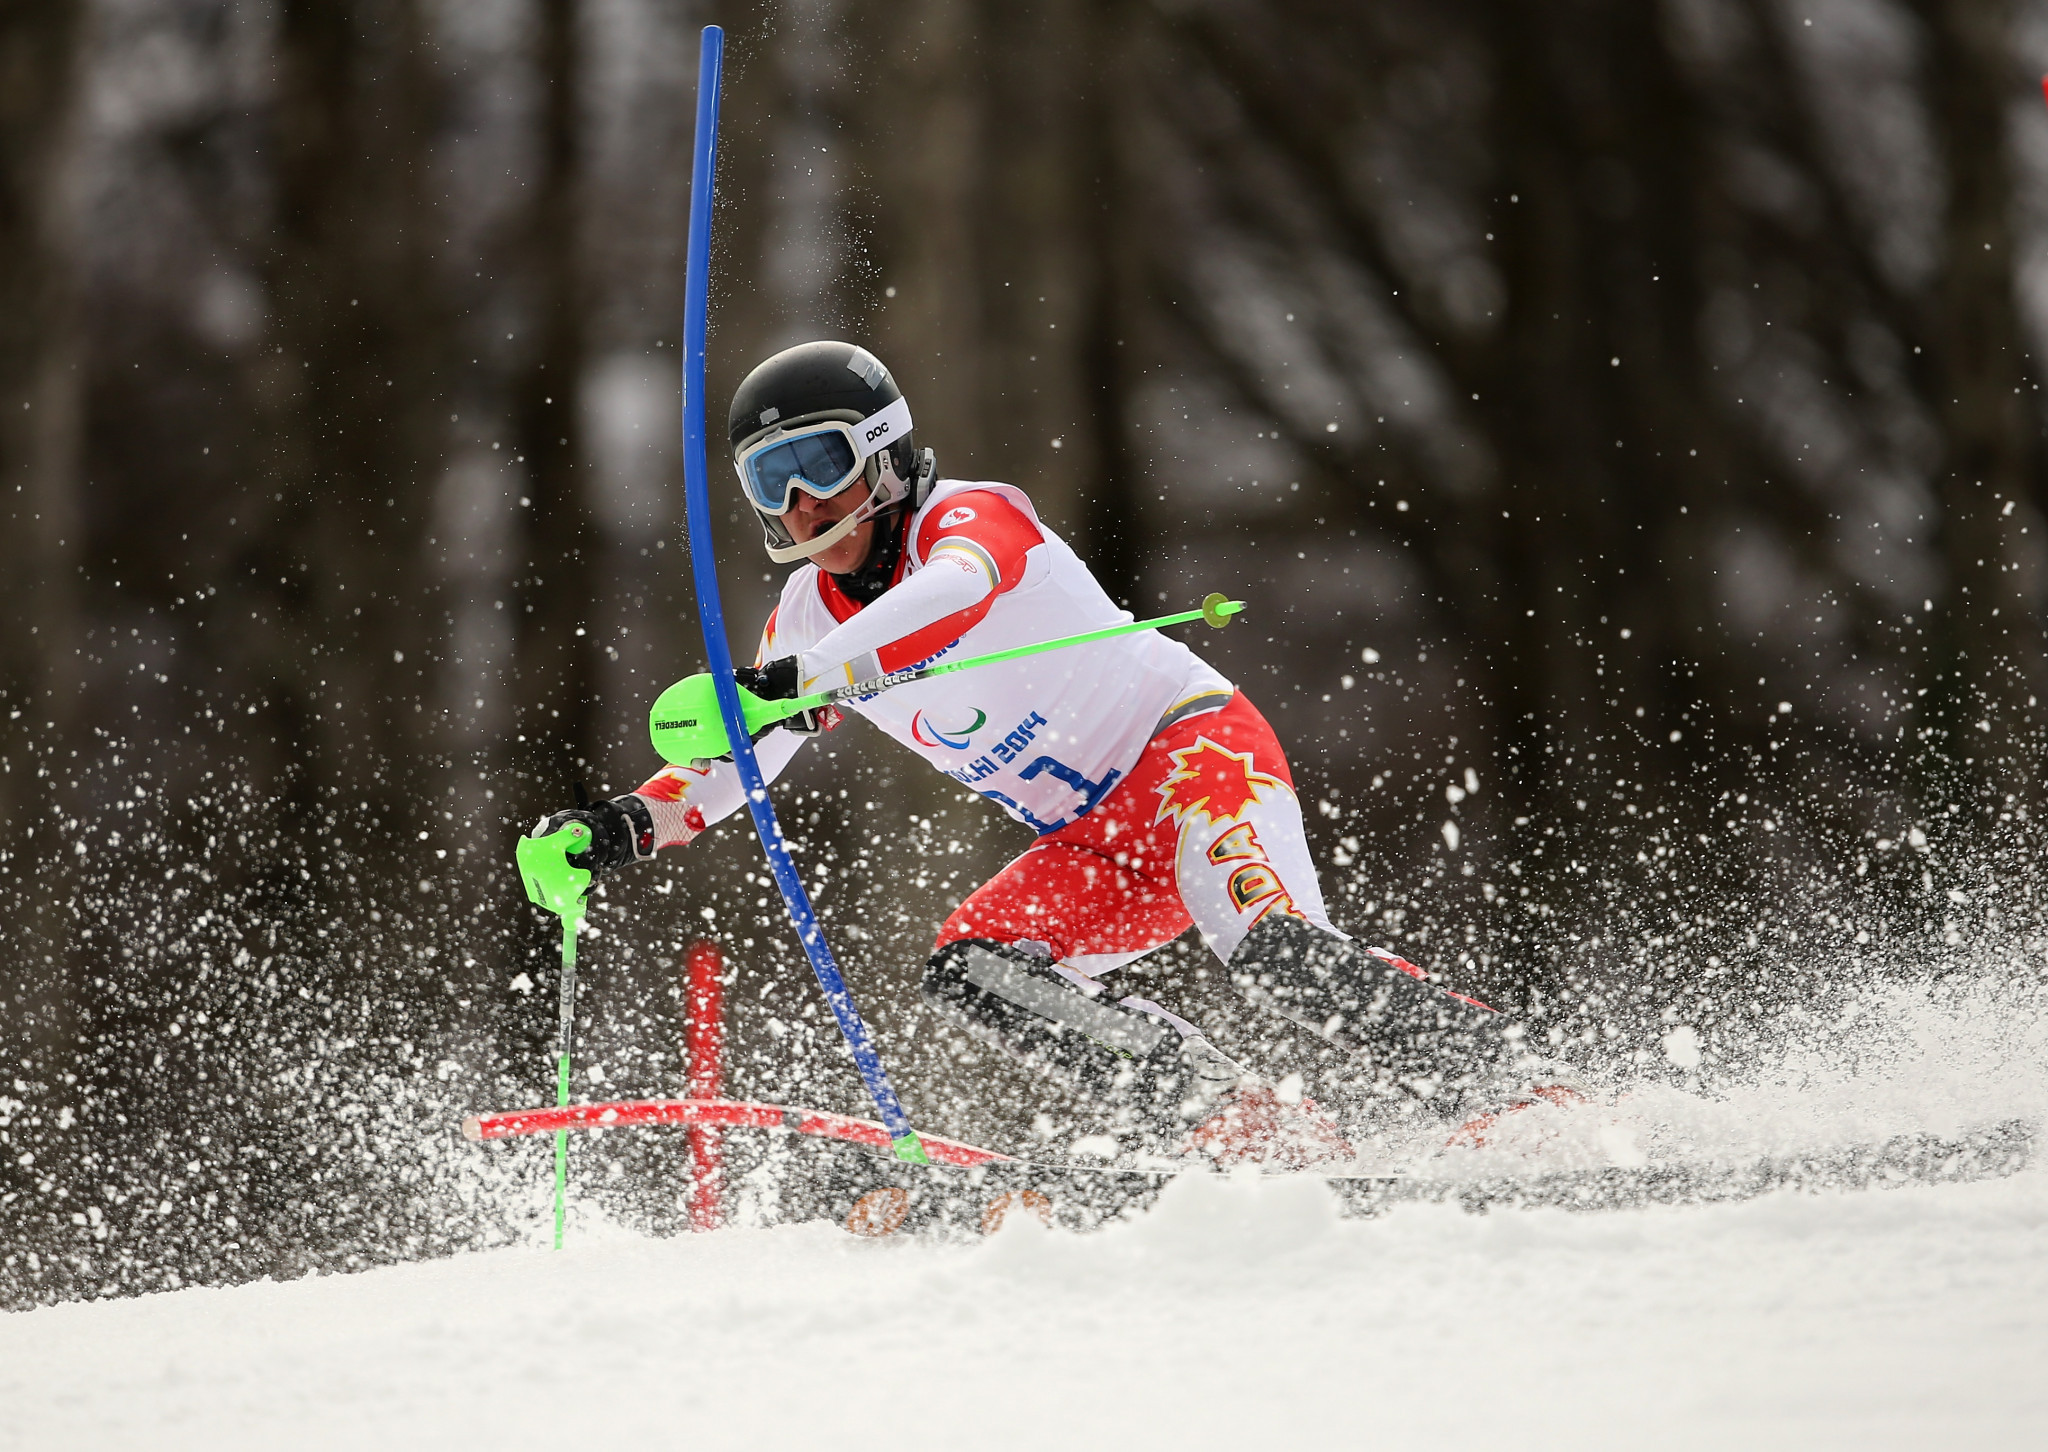 Marcoux dominates downhill courses on home snow at World Para Alpine Skiing World Cup in Kimberley